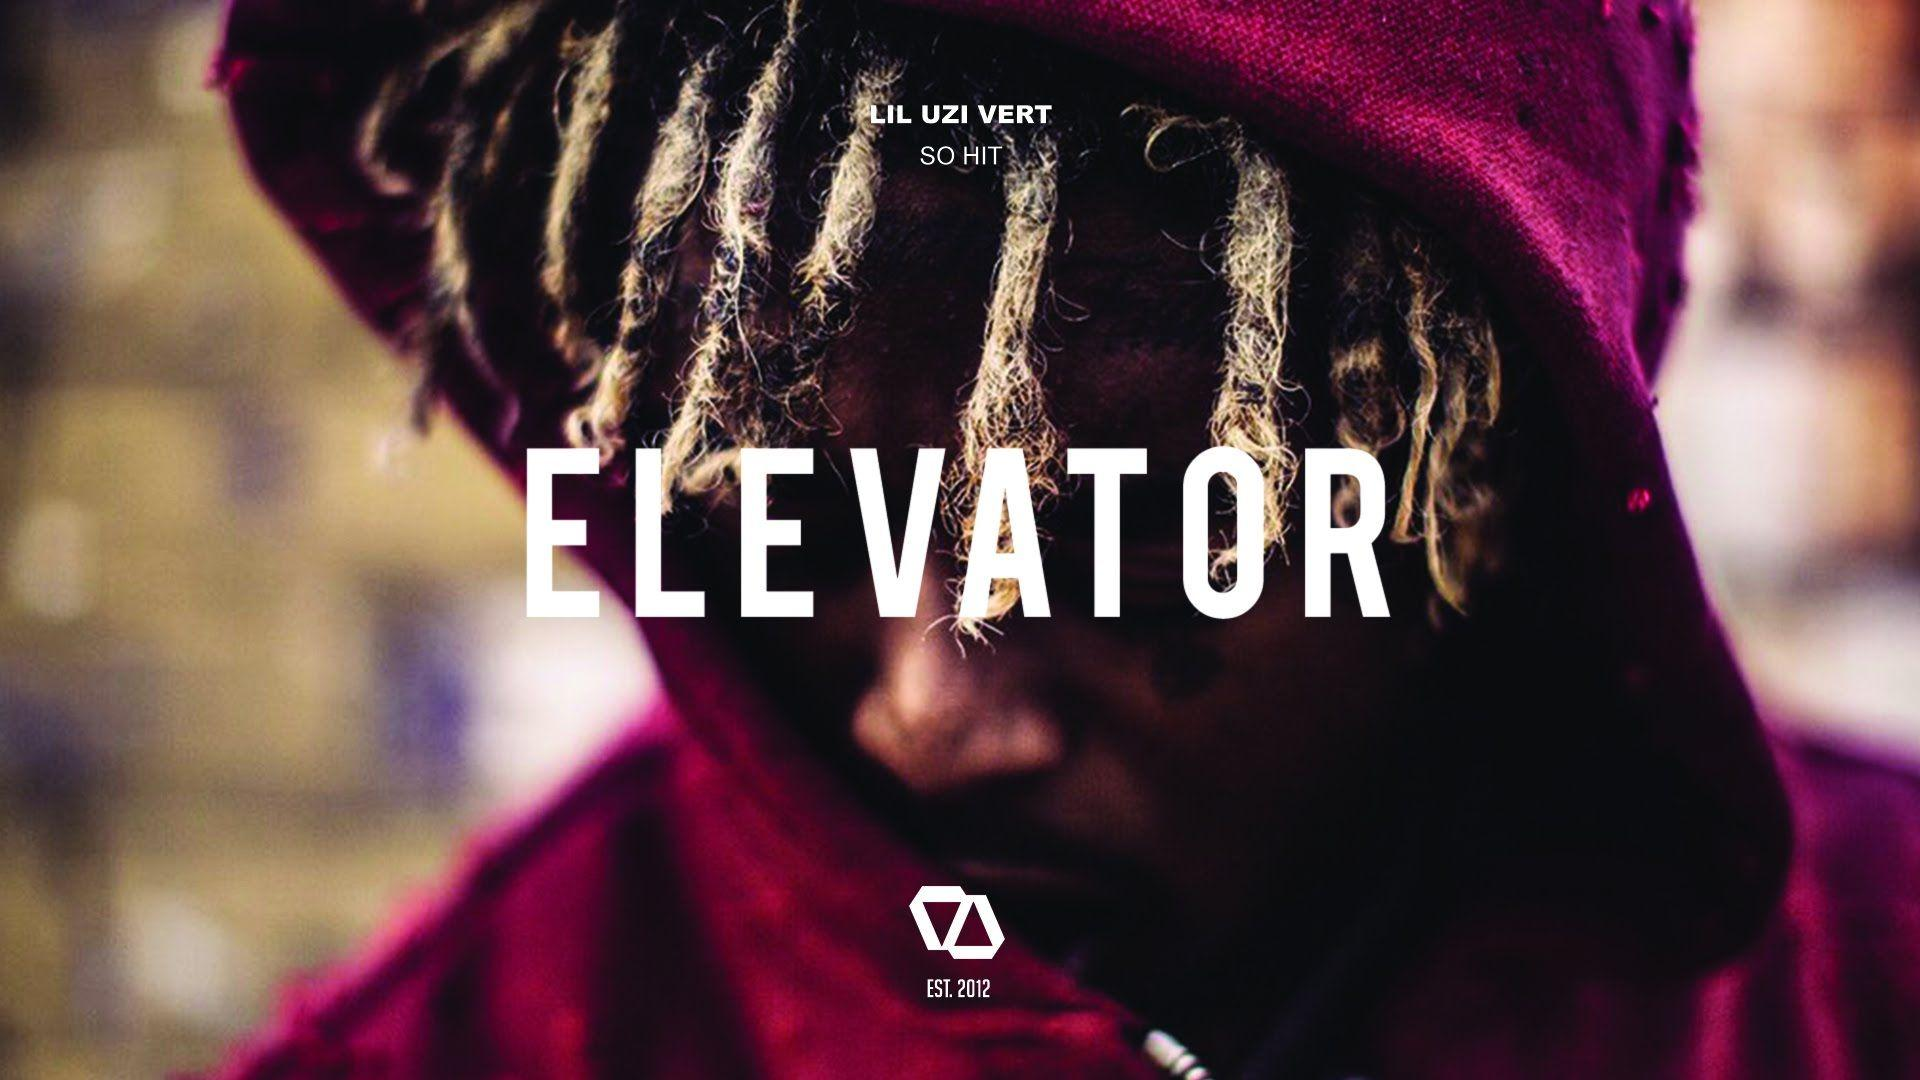 Lil Uzi Vert Wallpapers Wallpaper Cave Browse the user profile and get inspired. lil uzi vert wallpapers wallpaper cave